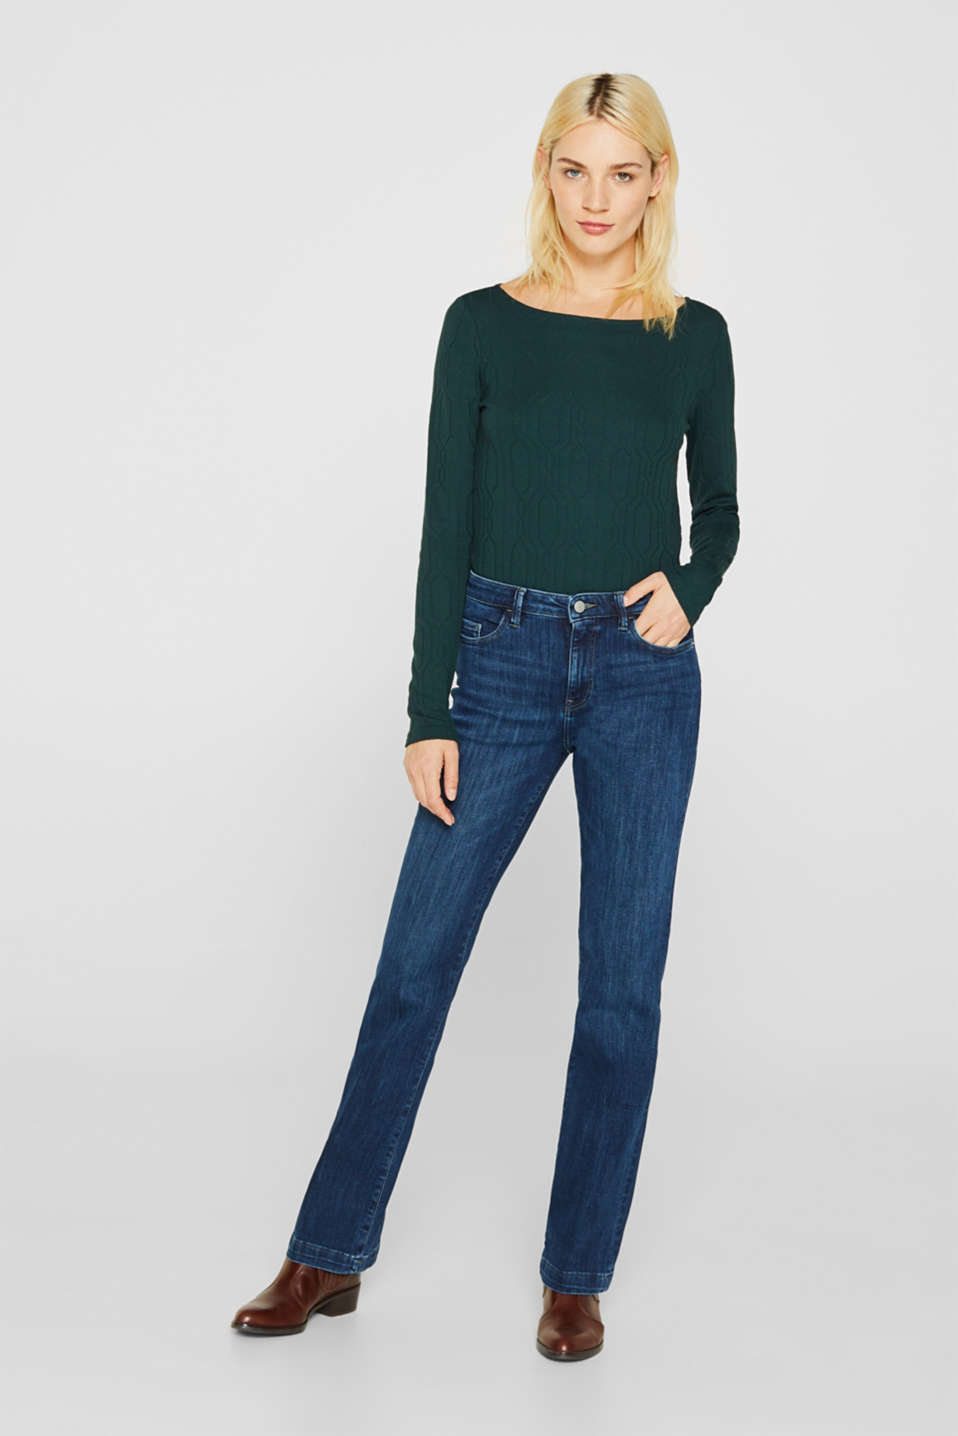 Long sleeve stretch top with cable texture, DARK TEAL GREEN, detail